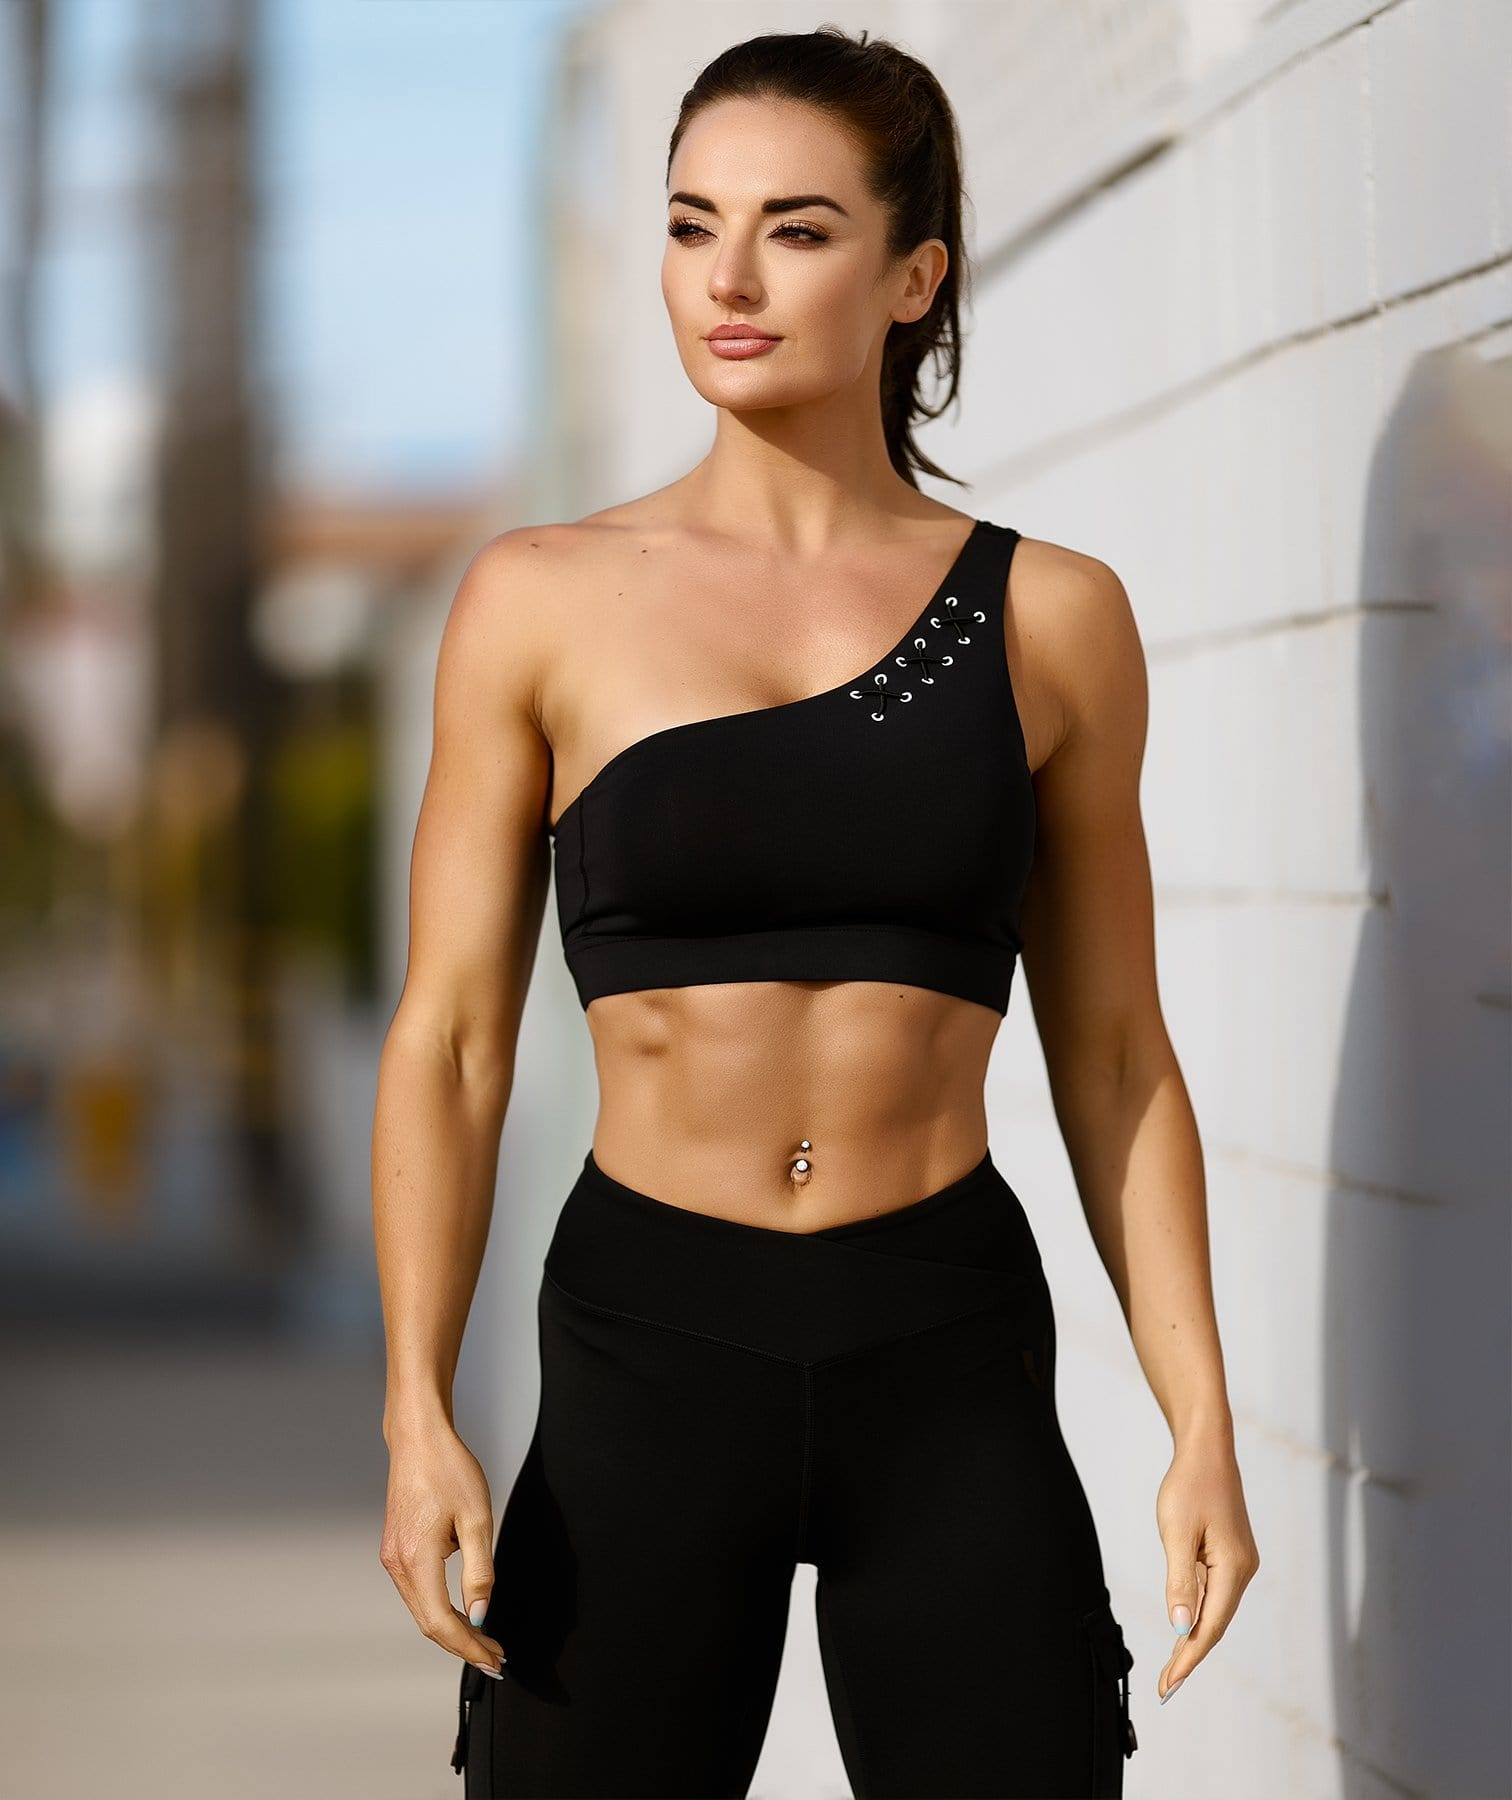 Honeypeach One-Shoulder Bra - Black - Firm Abs Fitness